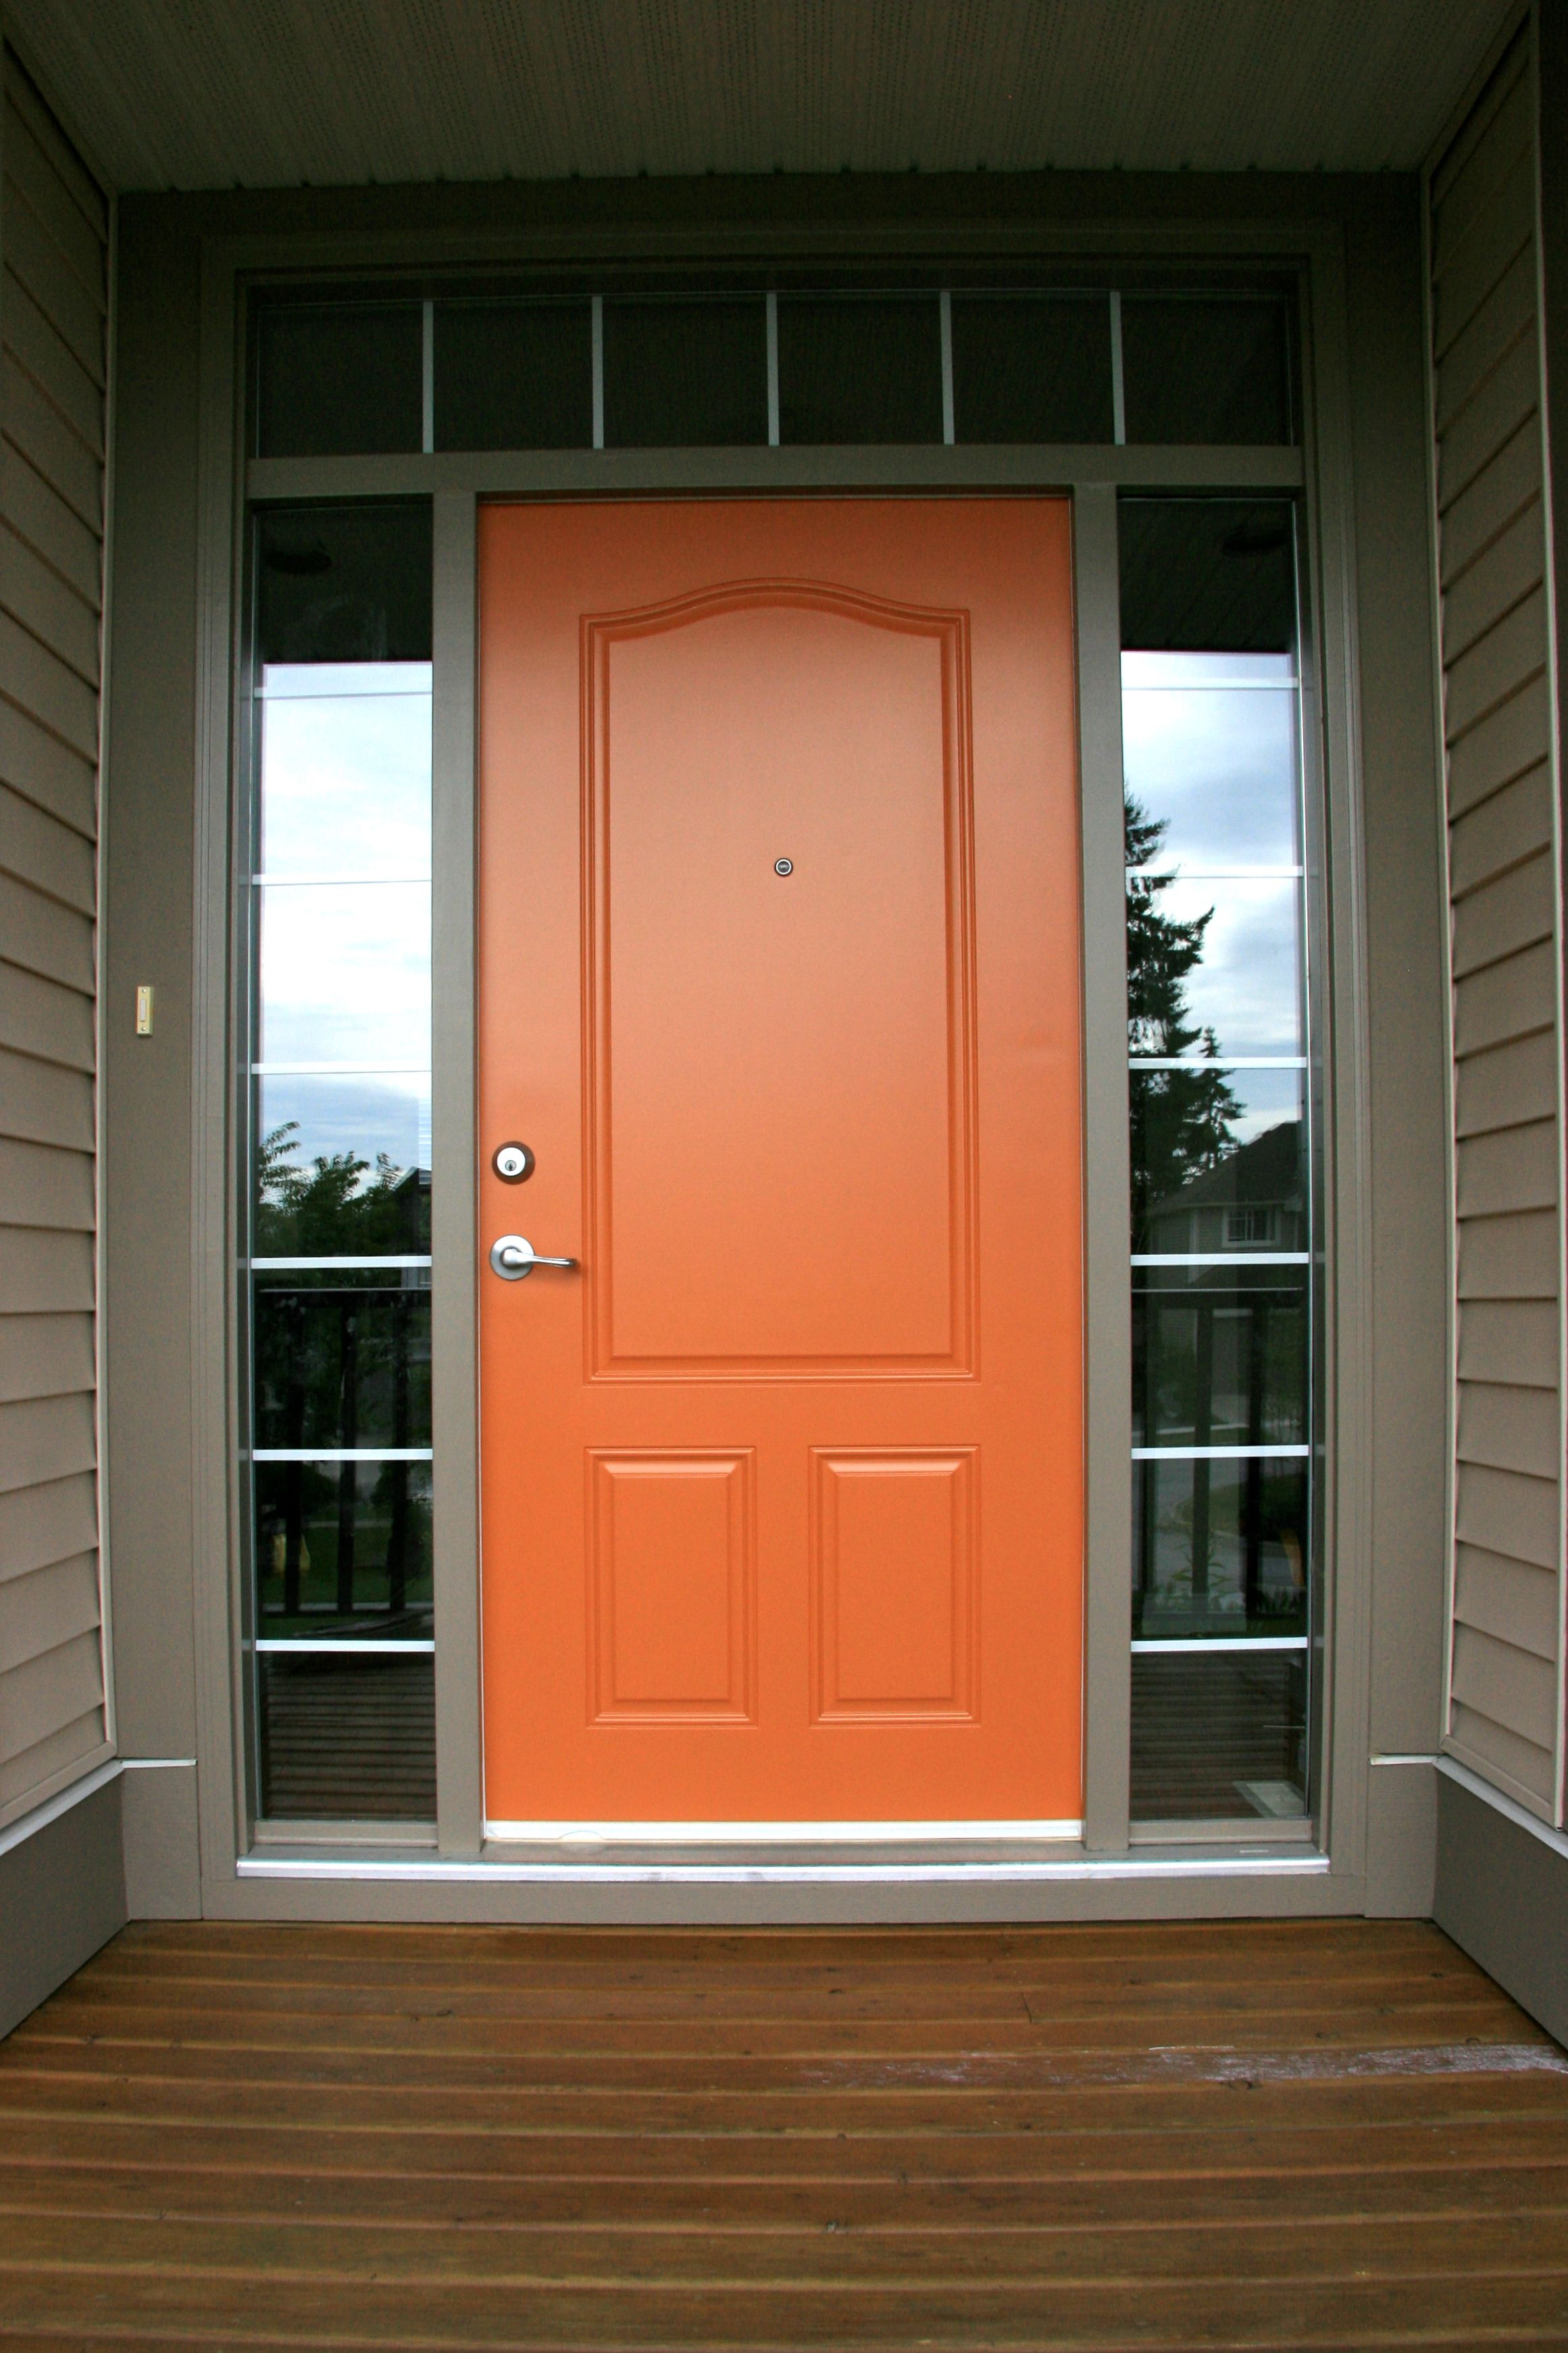 Benjamin moore front door paint colors - Front Doors Orange Front Doore Benjamin Moore